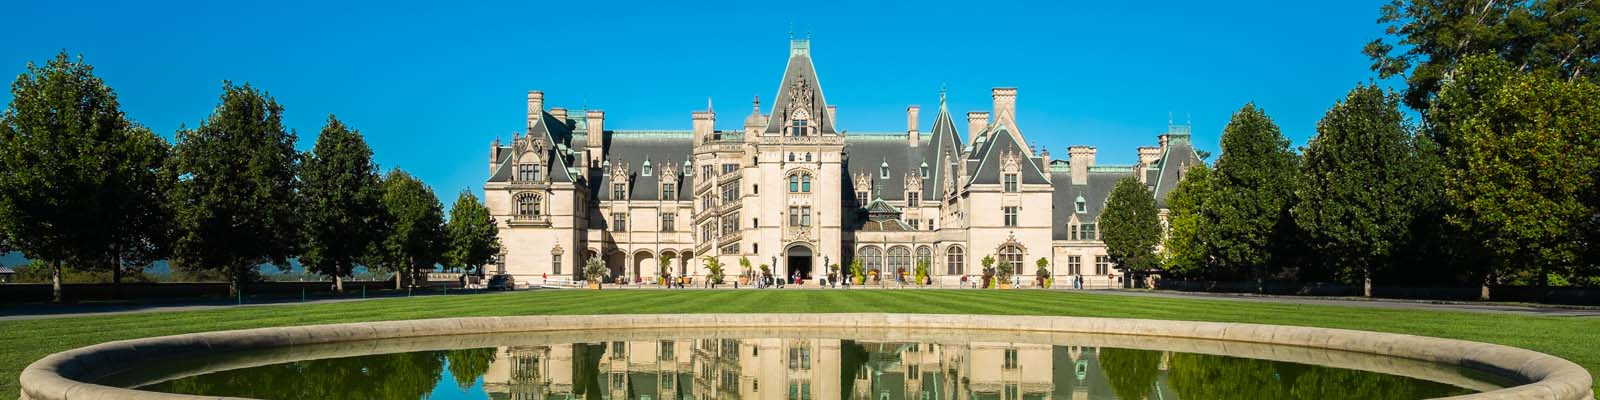 This is an image of the Biltmore Estate in Asheville North Carolina. ASTA-USA provides professional translation services in this city.